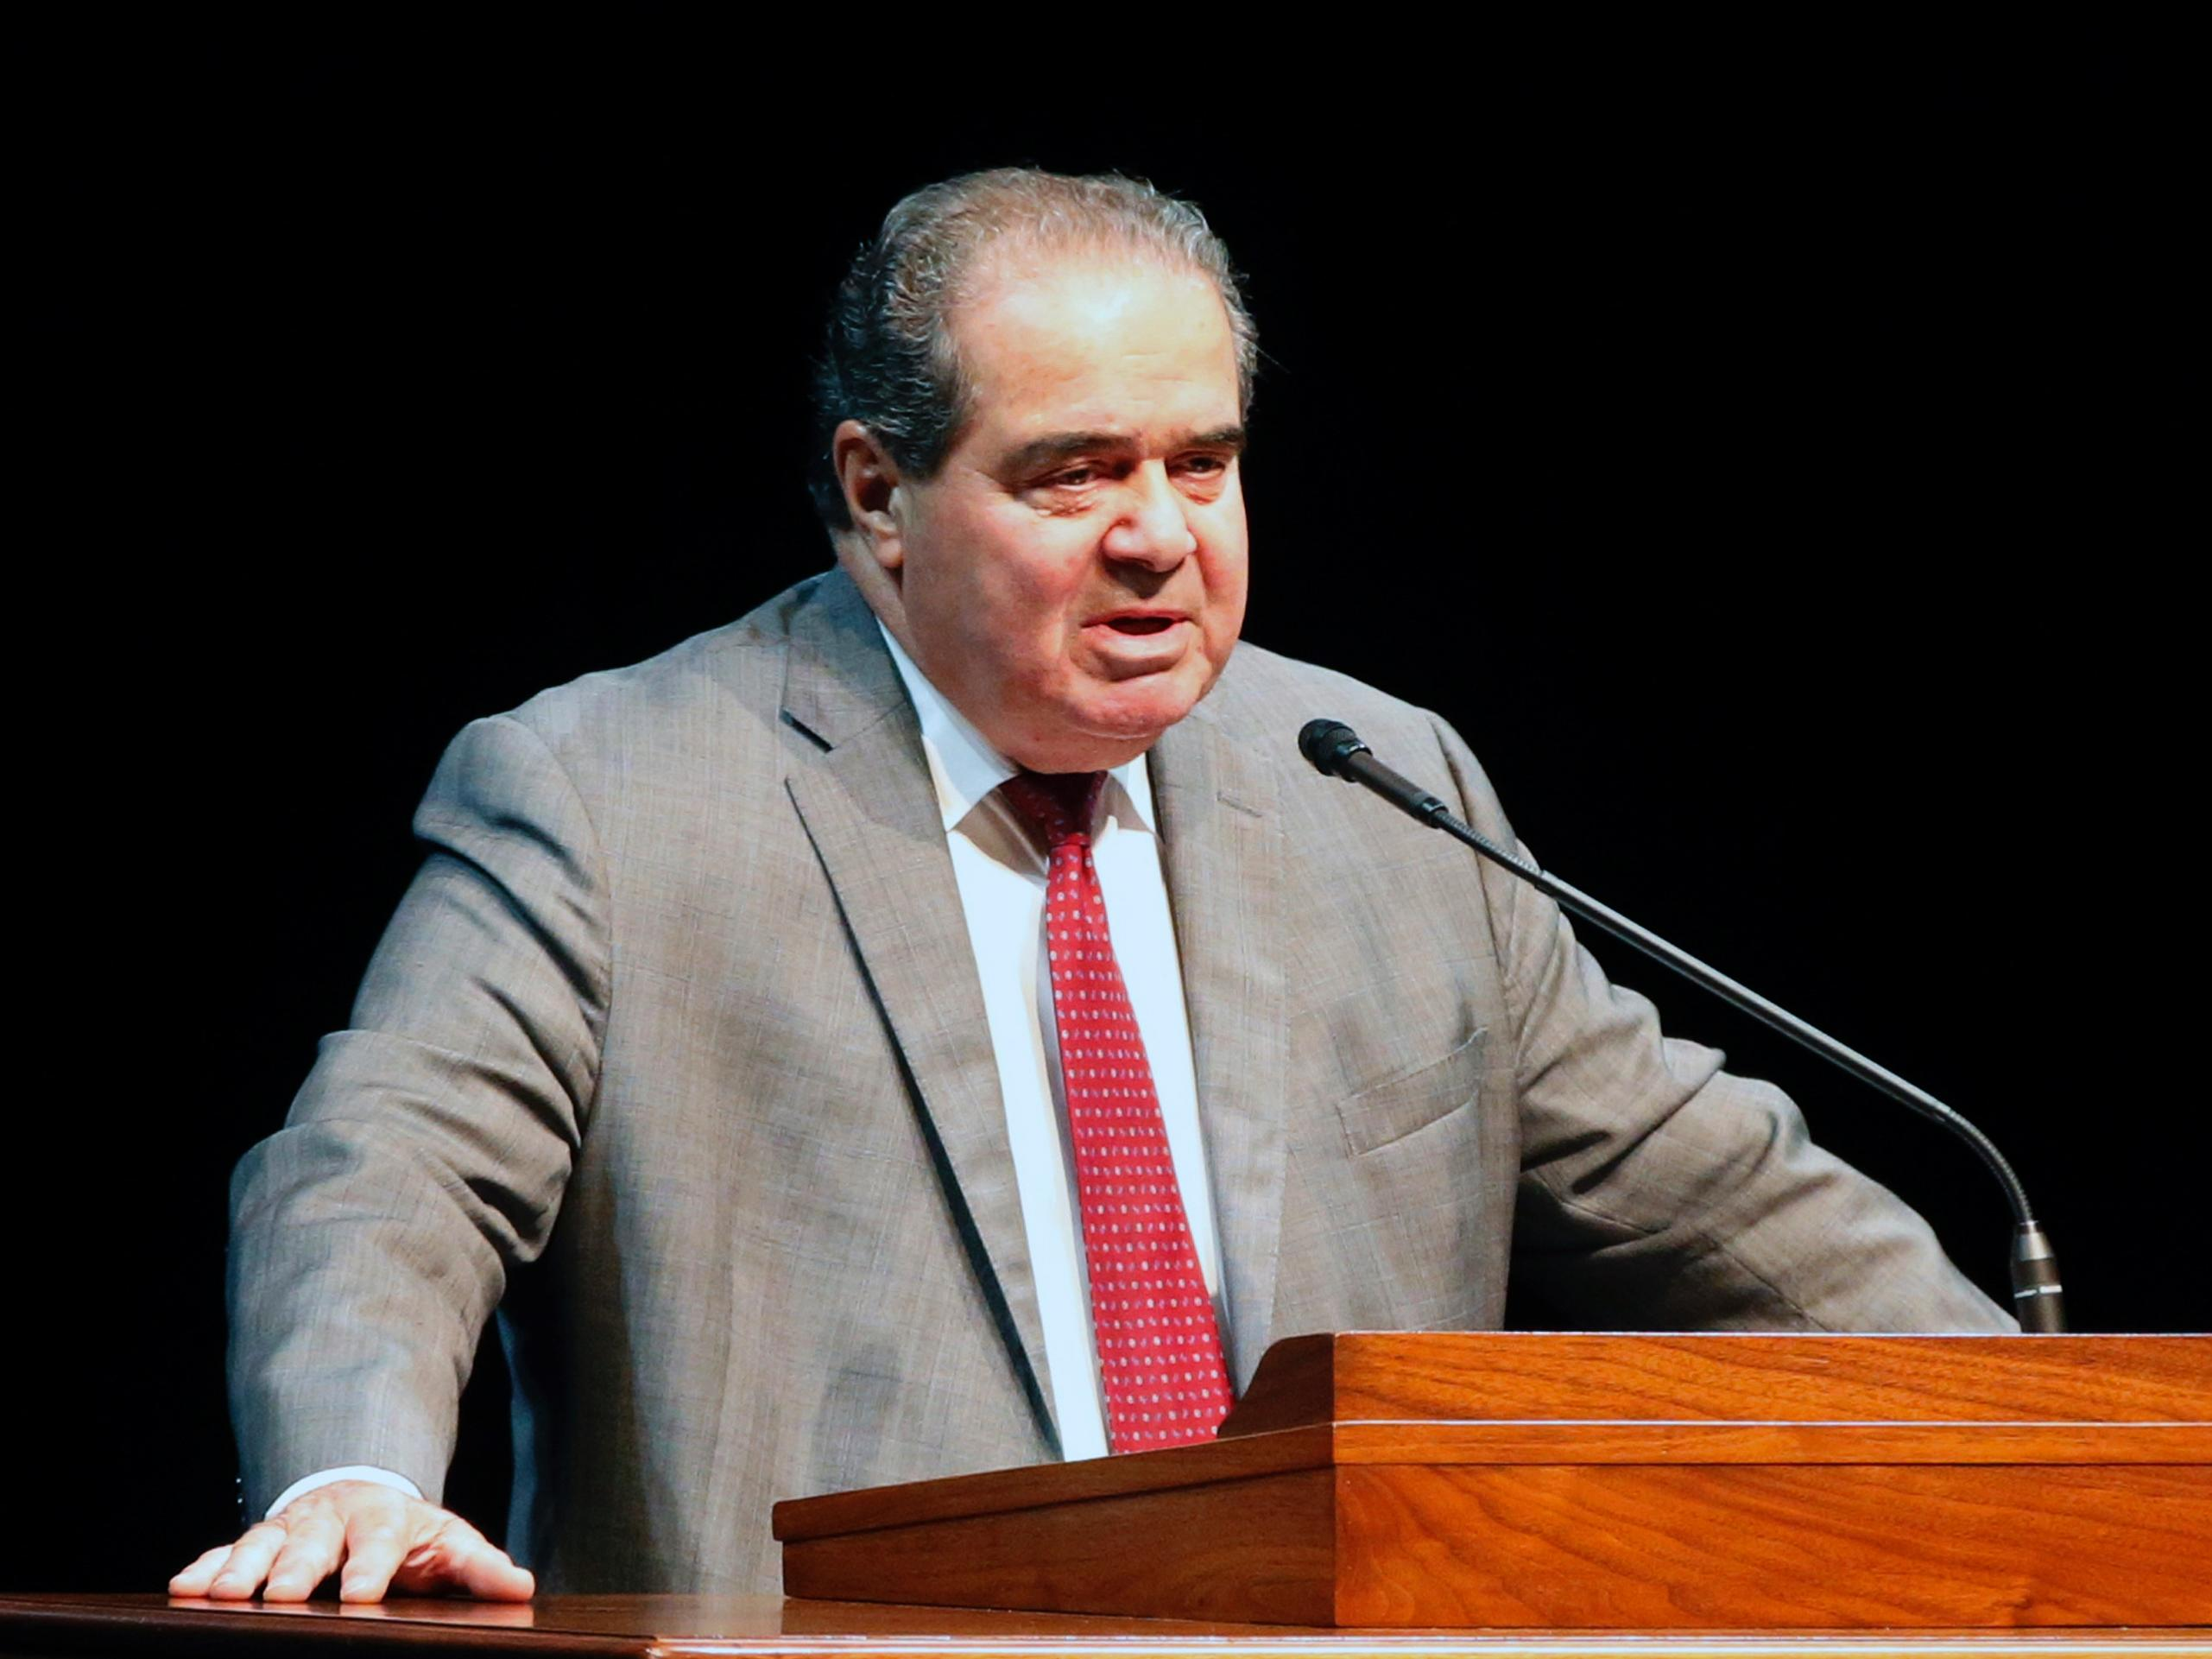 Supreme Court Justice Antonin Scalia found dead in Texas